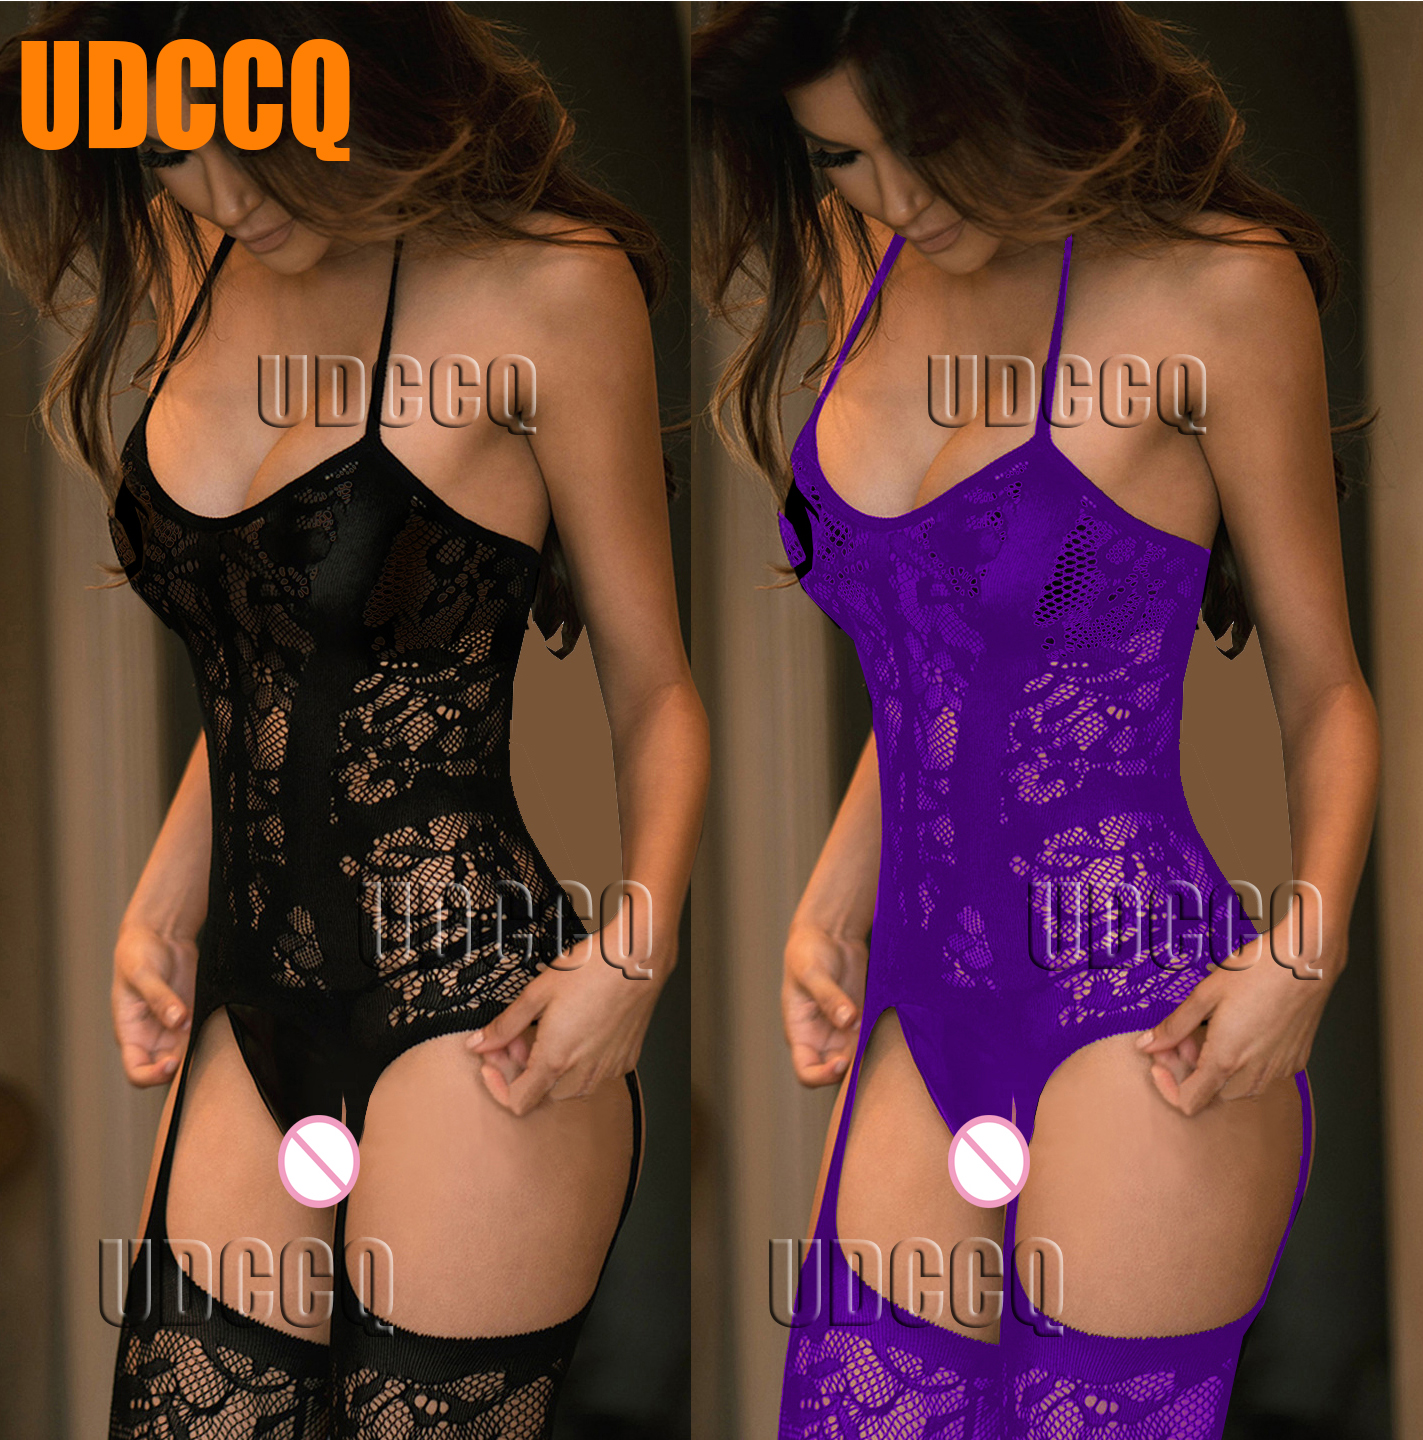 <font><b>Sexy</b></font> FishNet <font><b>Lingerie</b></font> <font><b>Babydoll</b></font> baby doll dress wedding night Underwear intimates Chemises Body stocking costumes Negligees 9911 image